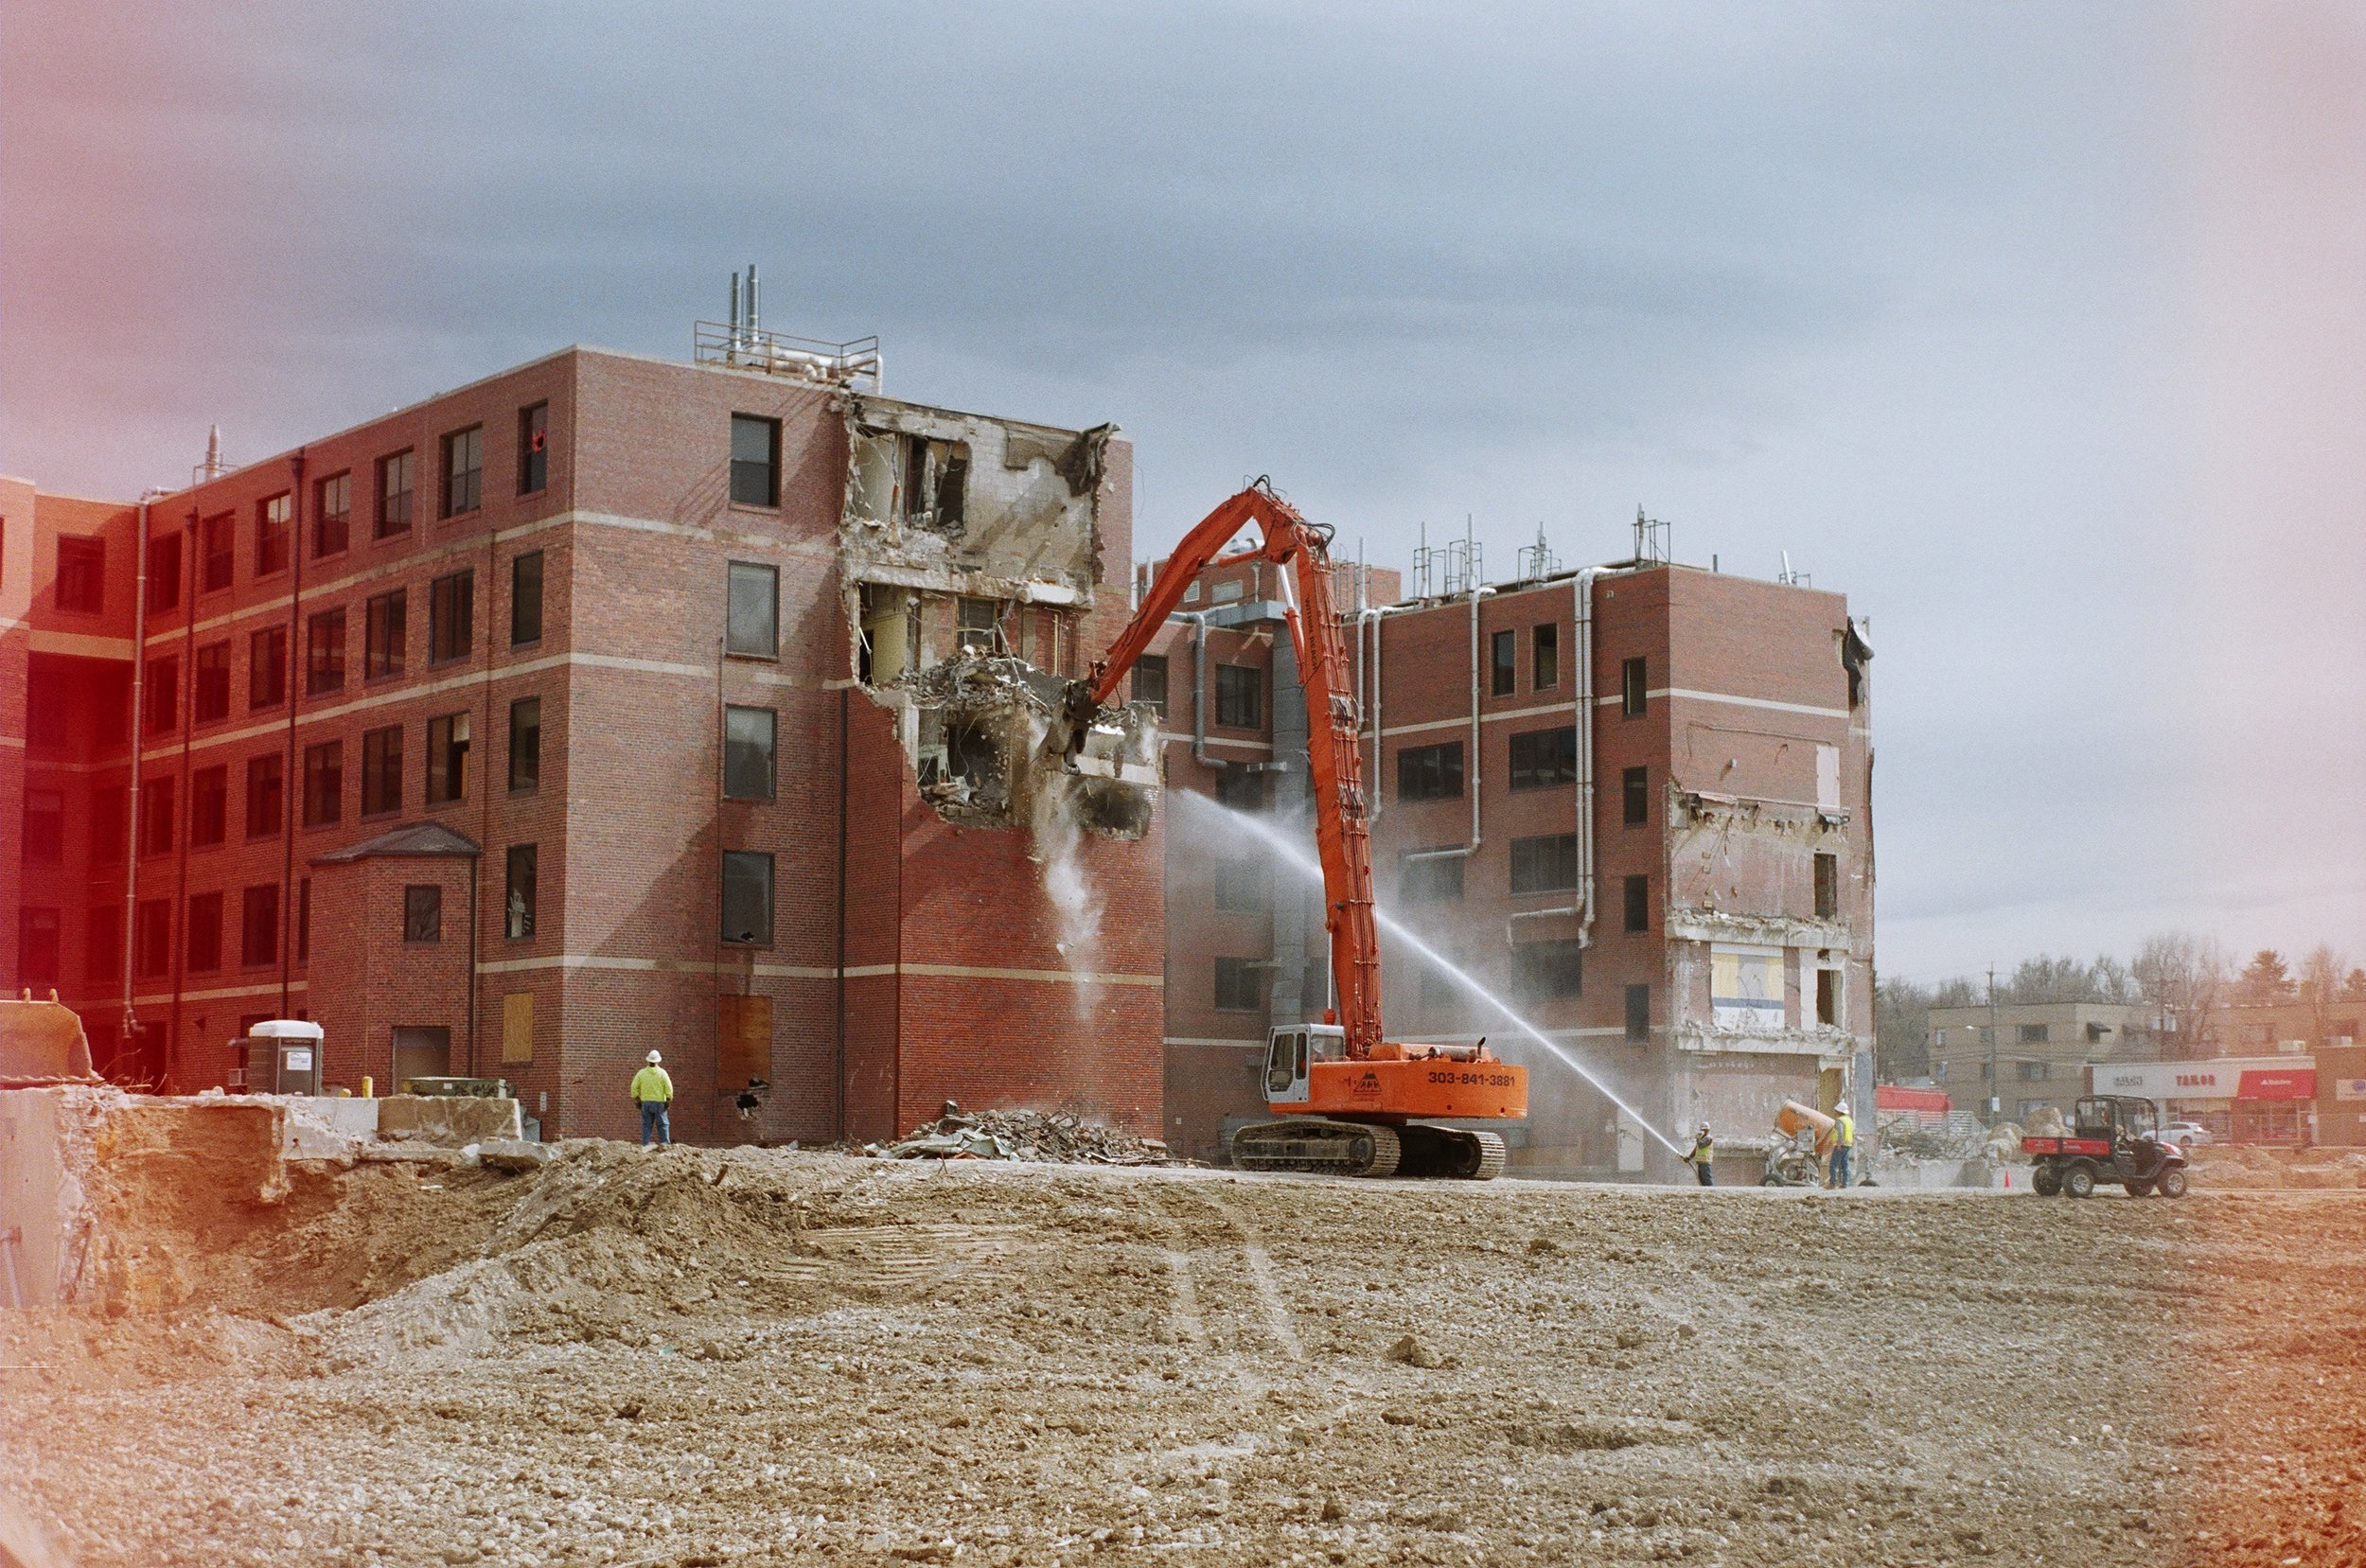 Picture of demolition.